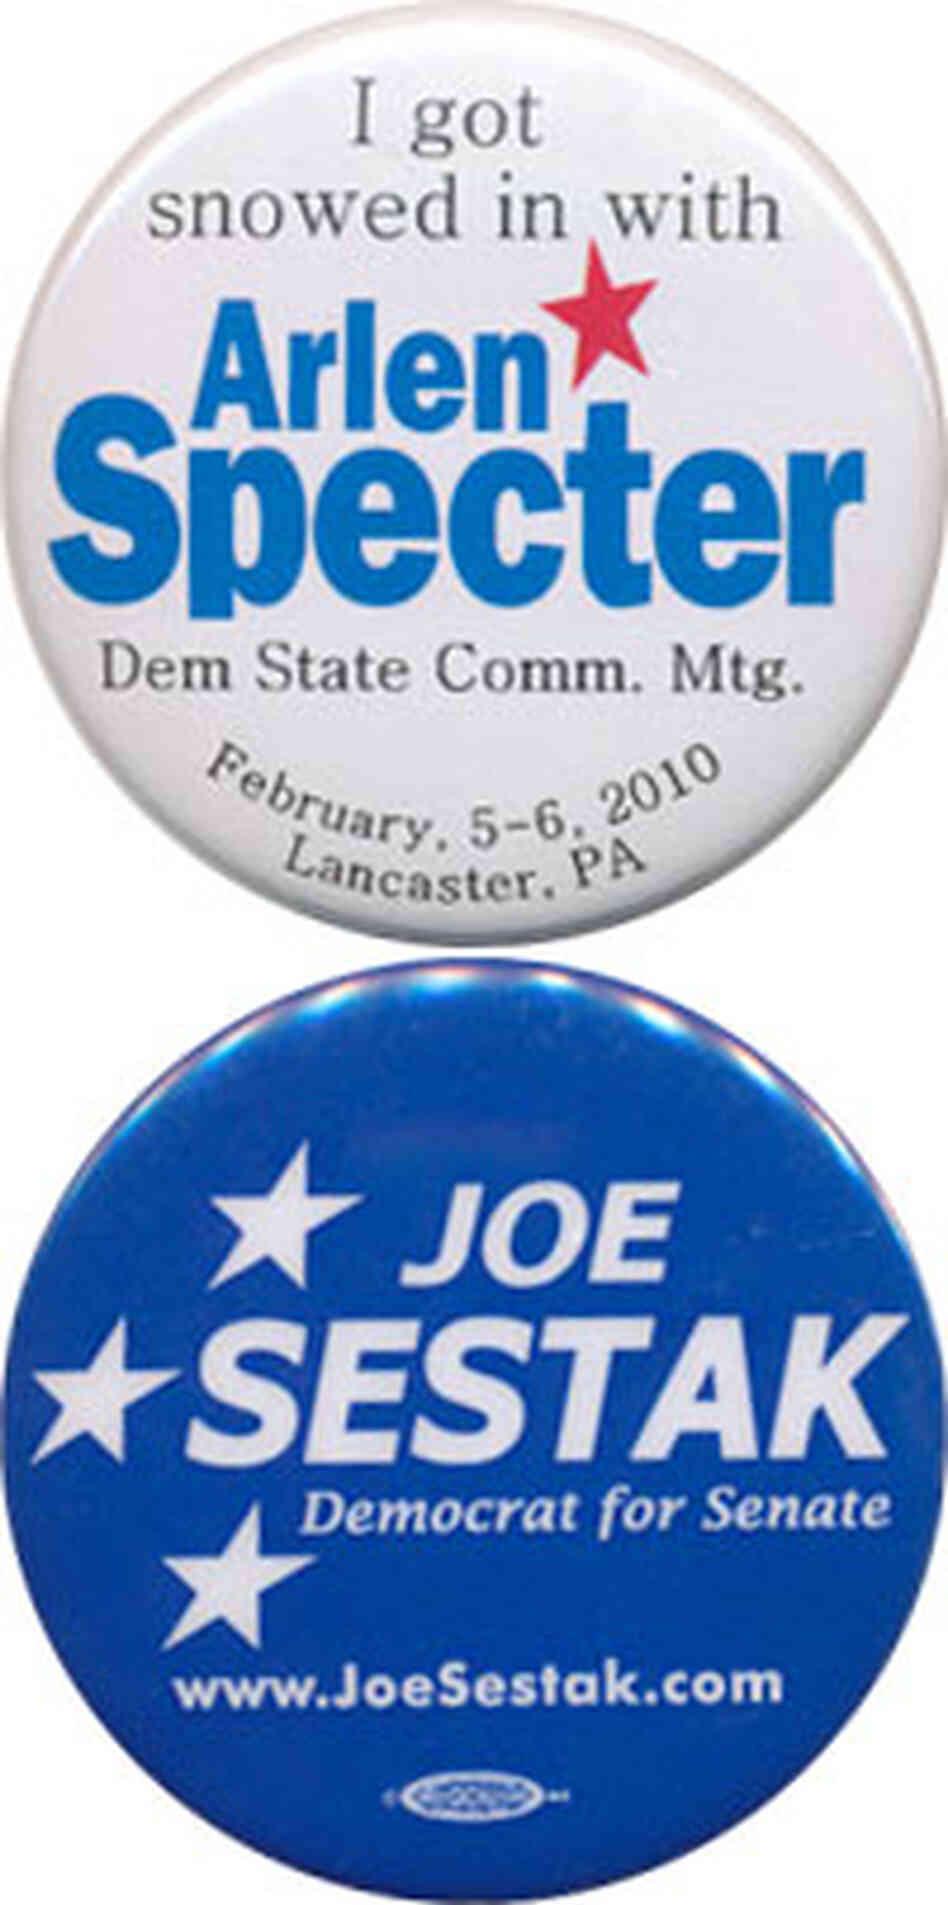 Specter and Sestak buttons